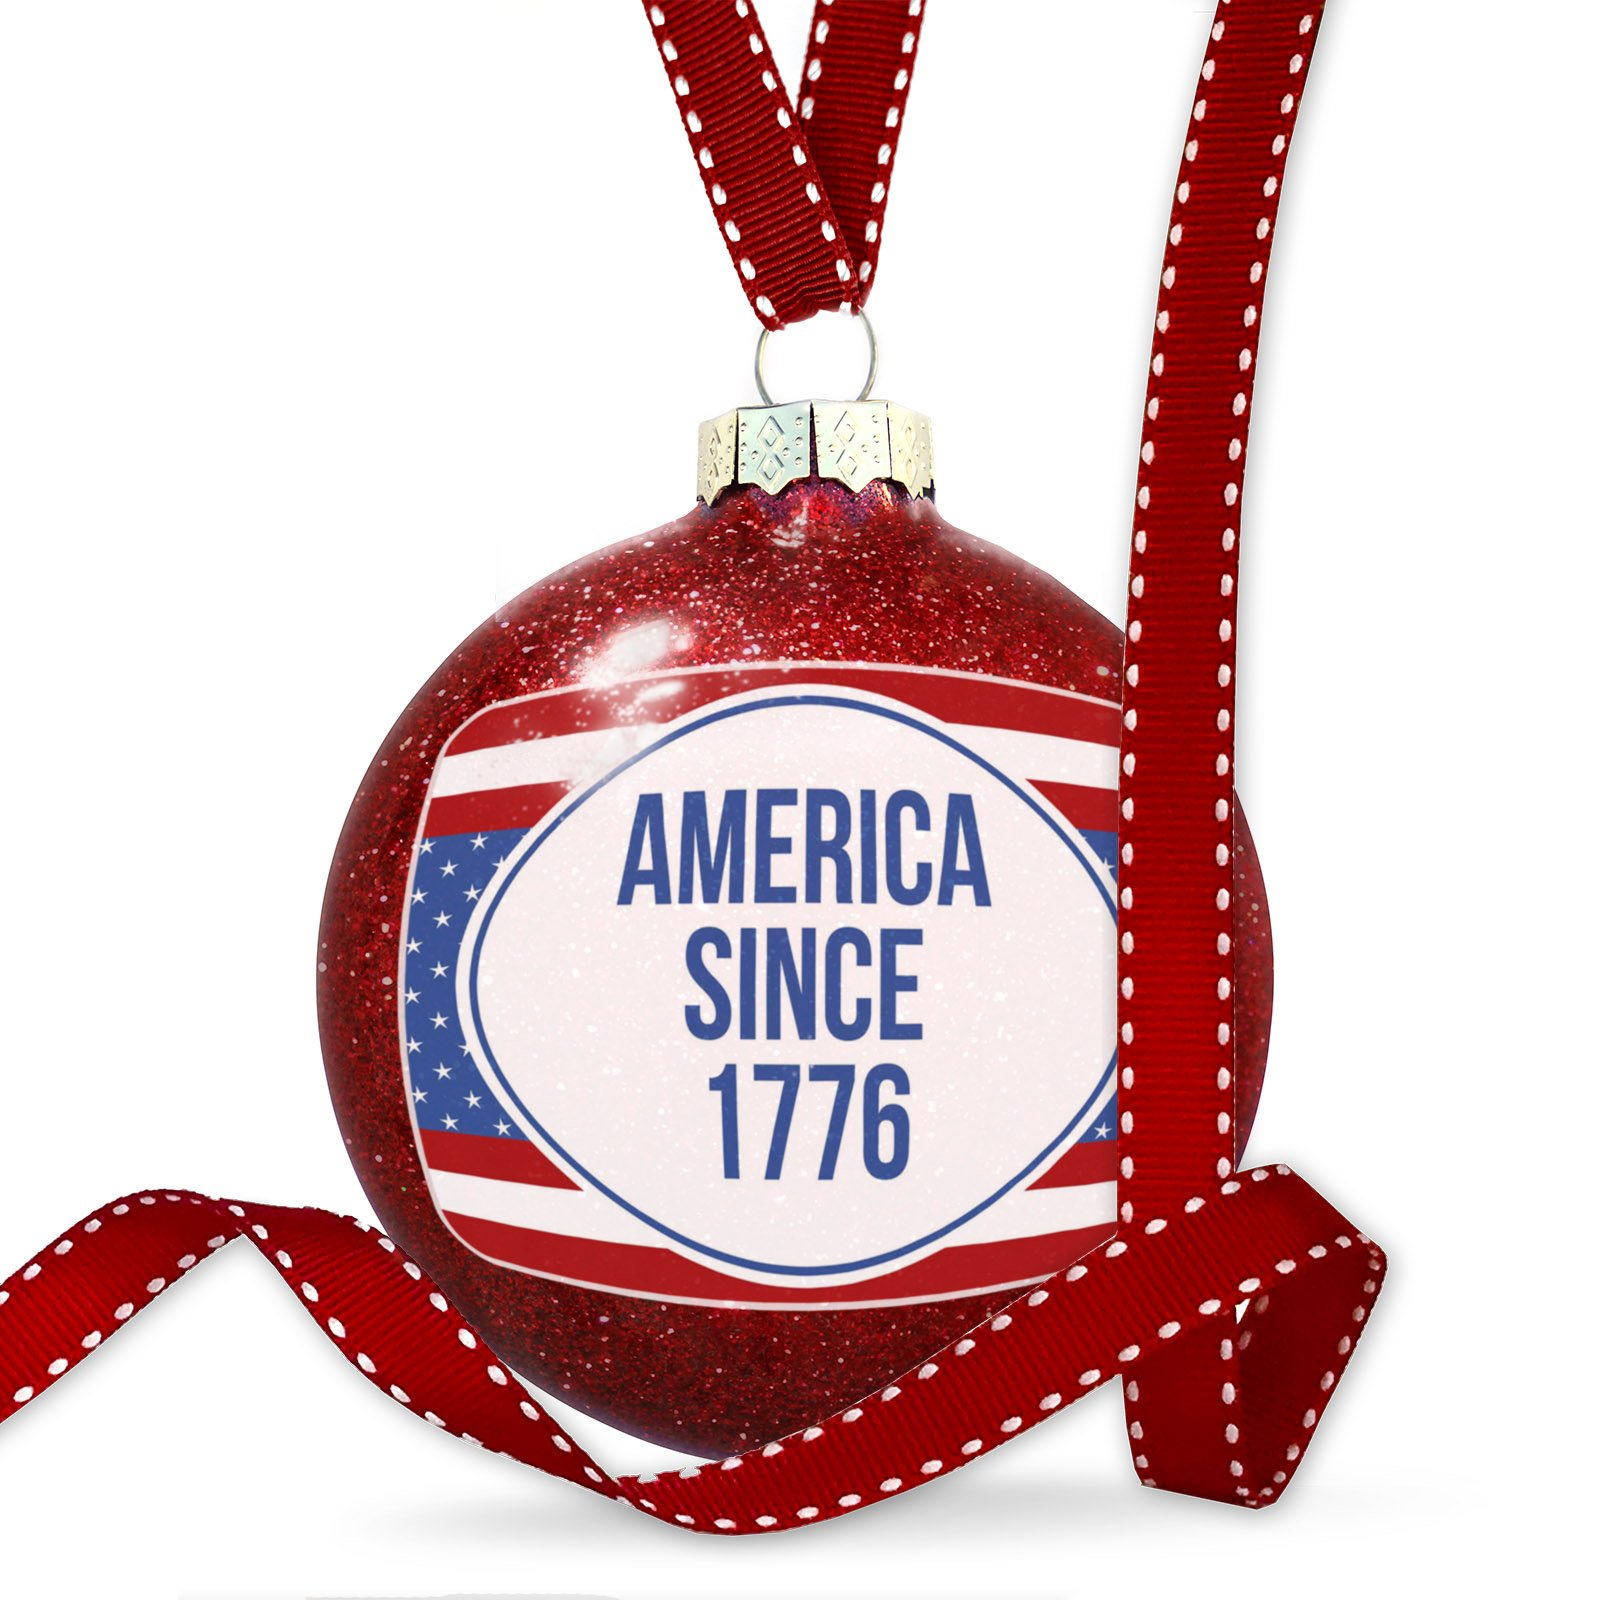 Christmas Decoration America Since 1776 Fourth of July Red, White, And Blue Ornament